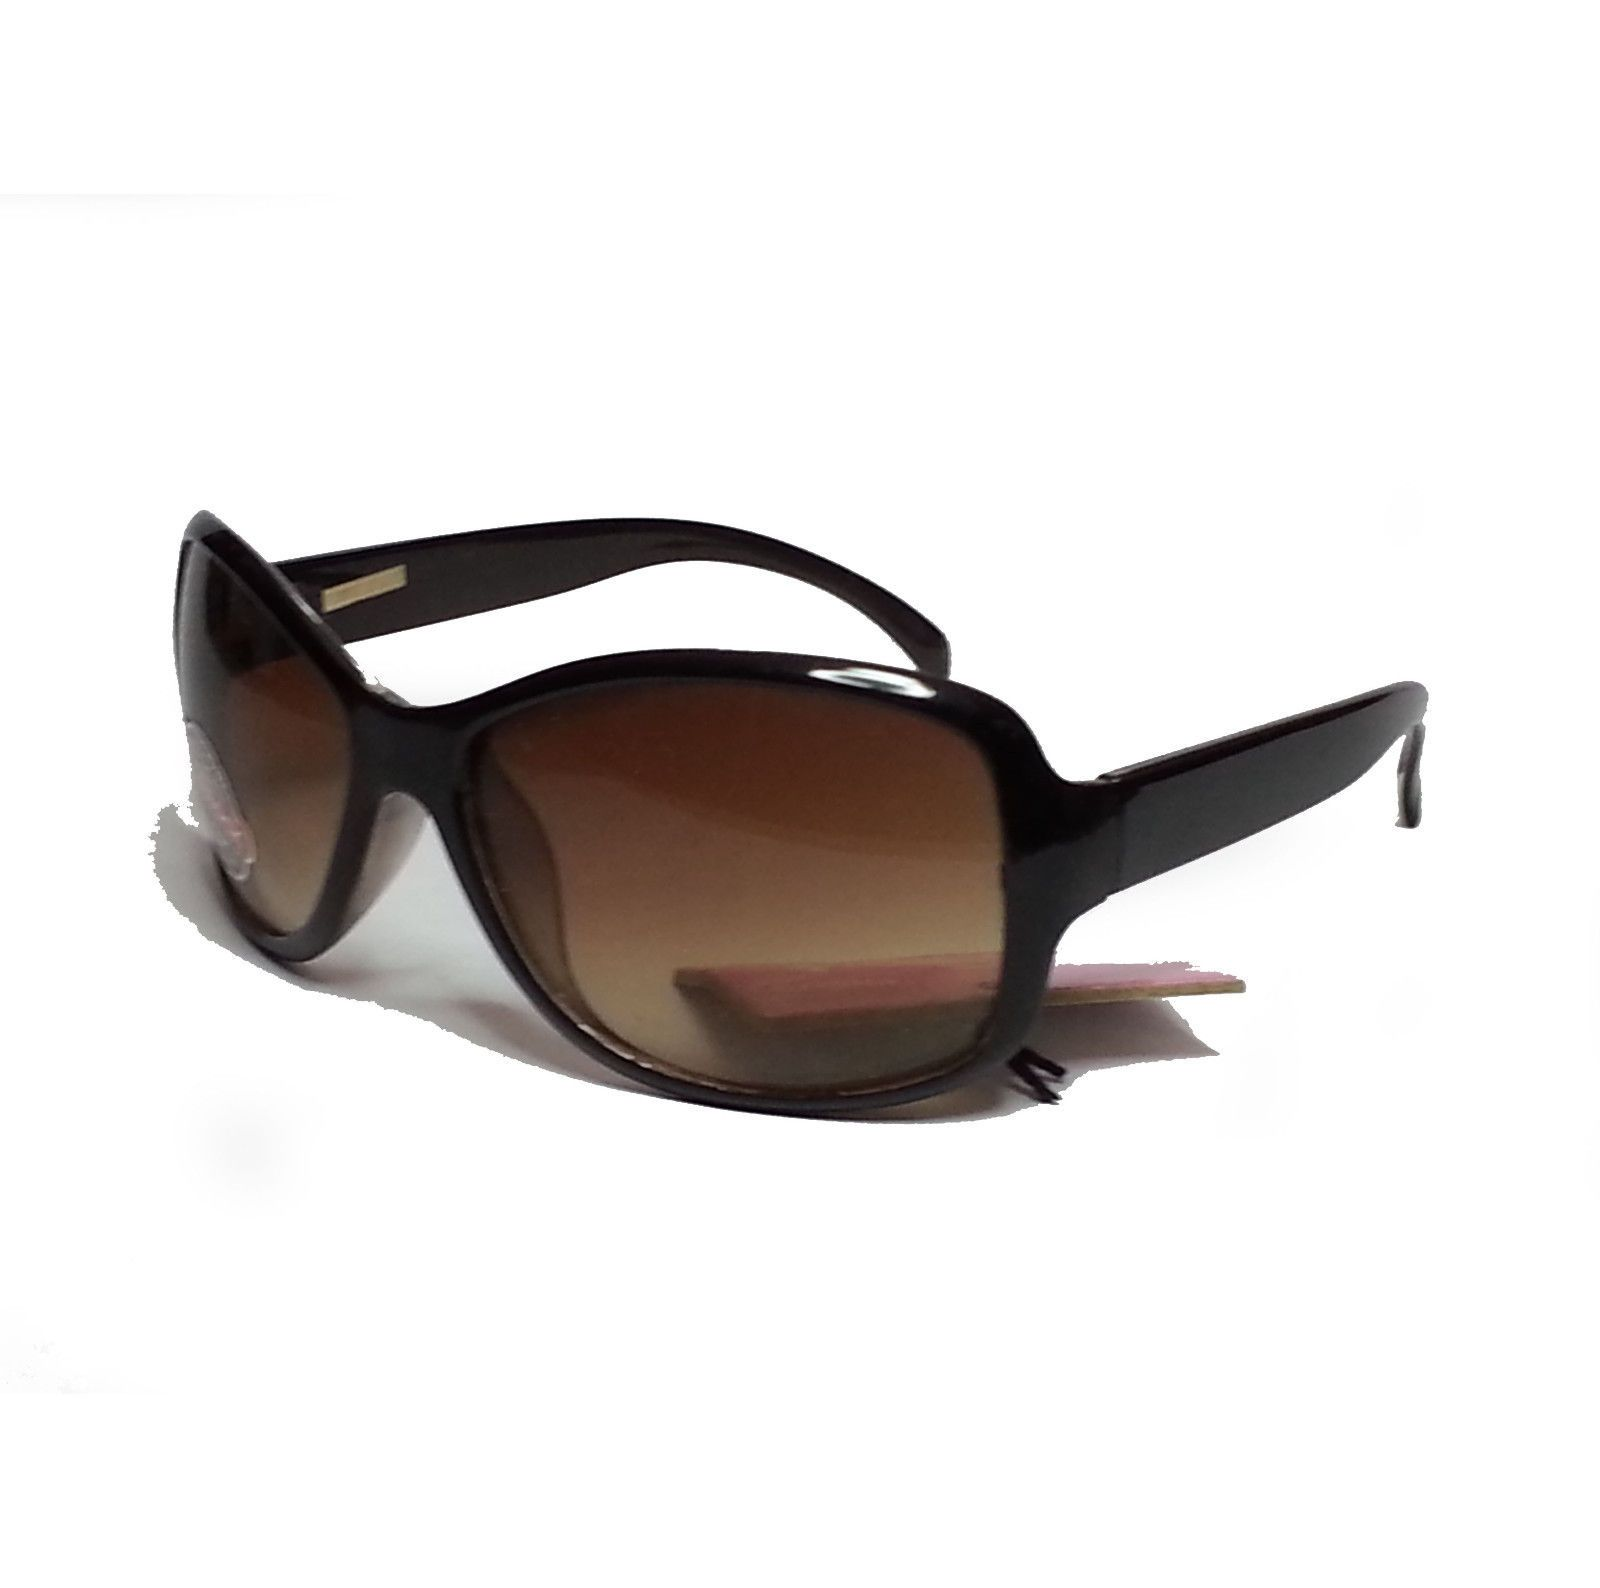 Foster Grant Womn Sunglasses Black Frame Brown Lens Oval Butterfly Style